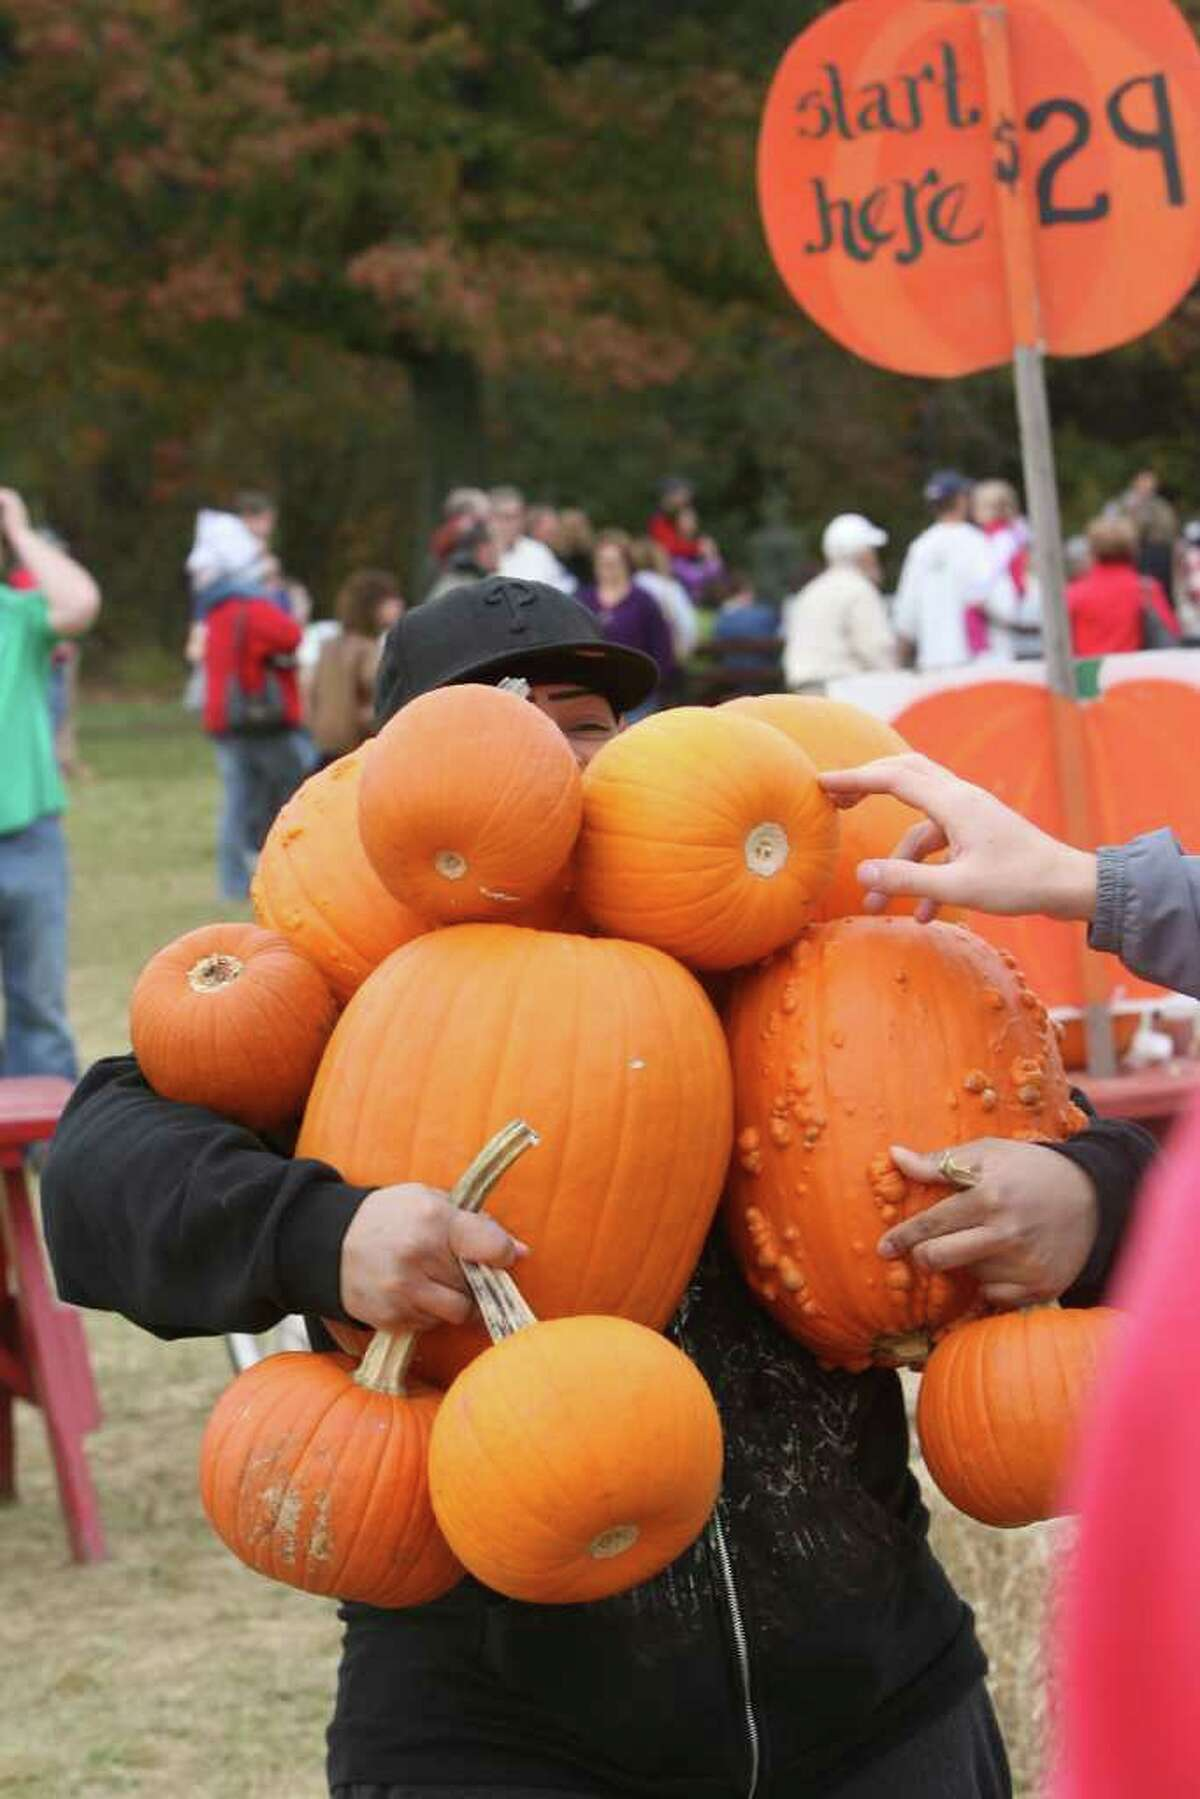 Ali Perez, of Bridgeport, carries as many pumpkins as she can at the Jones Tree Farm UNICEF Family Festival on Sunday, October 24, 2010.